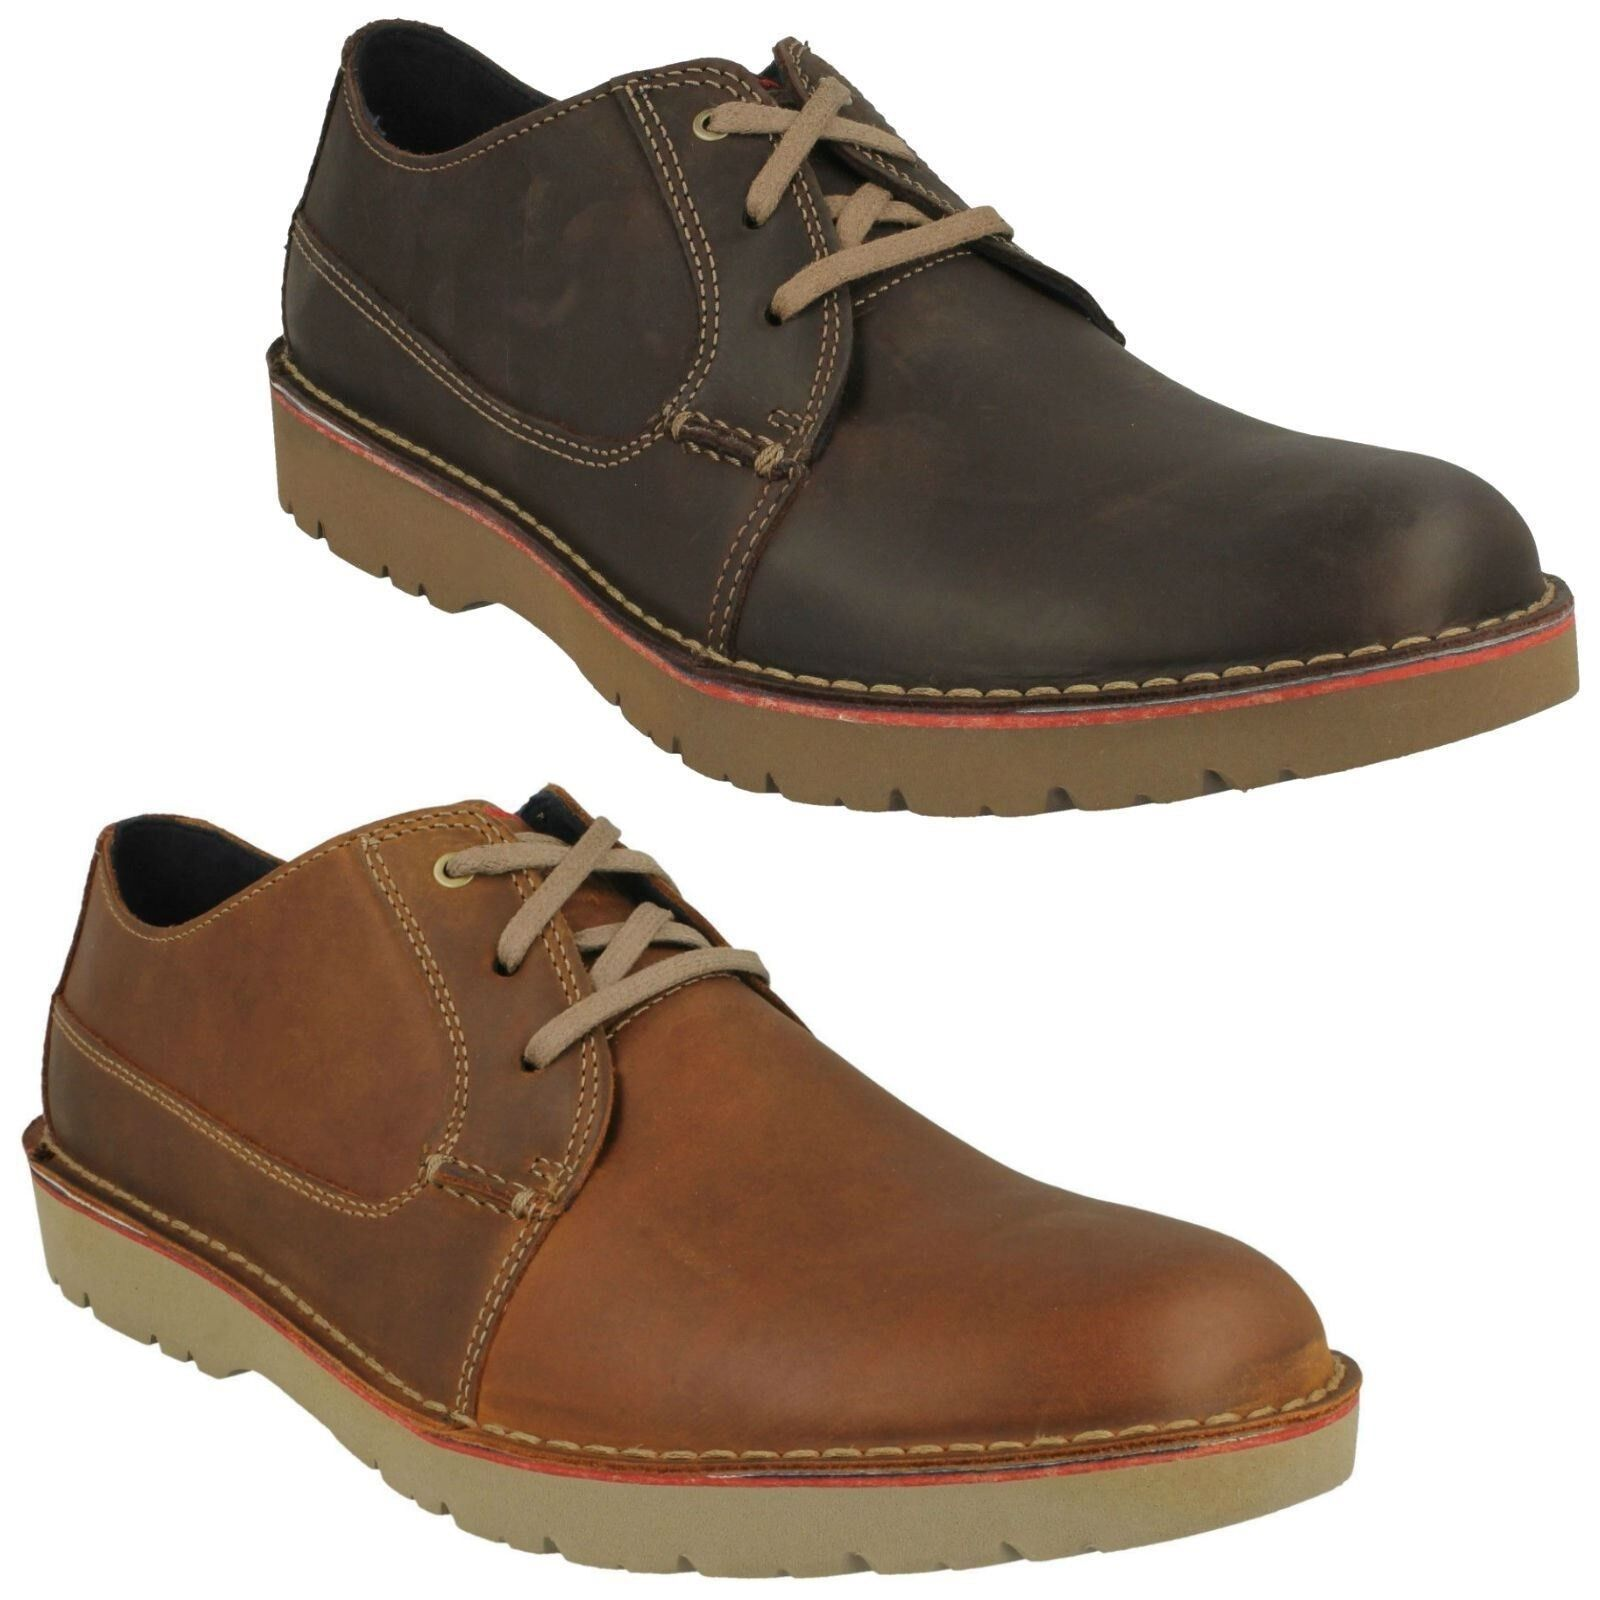 Herren CLARKS LEATHER SOFT LACE UP CASUAL CUSHION SOFT LEATHER TRAINERS Schuhe SIZE VARGO PLAIN 8b4c4a